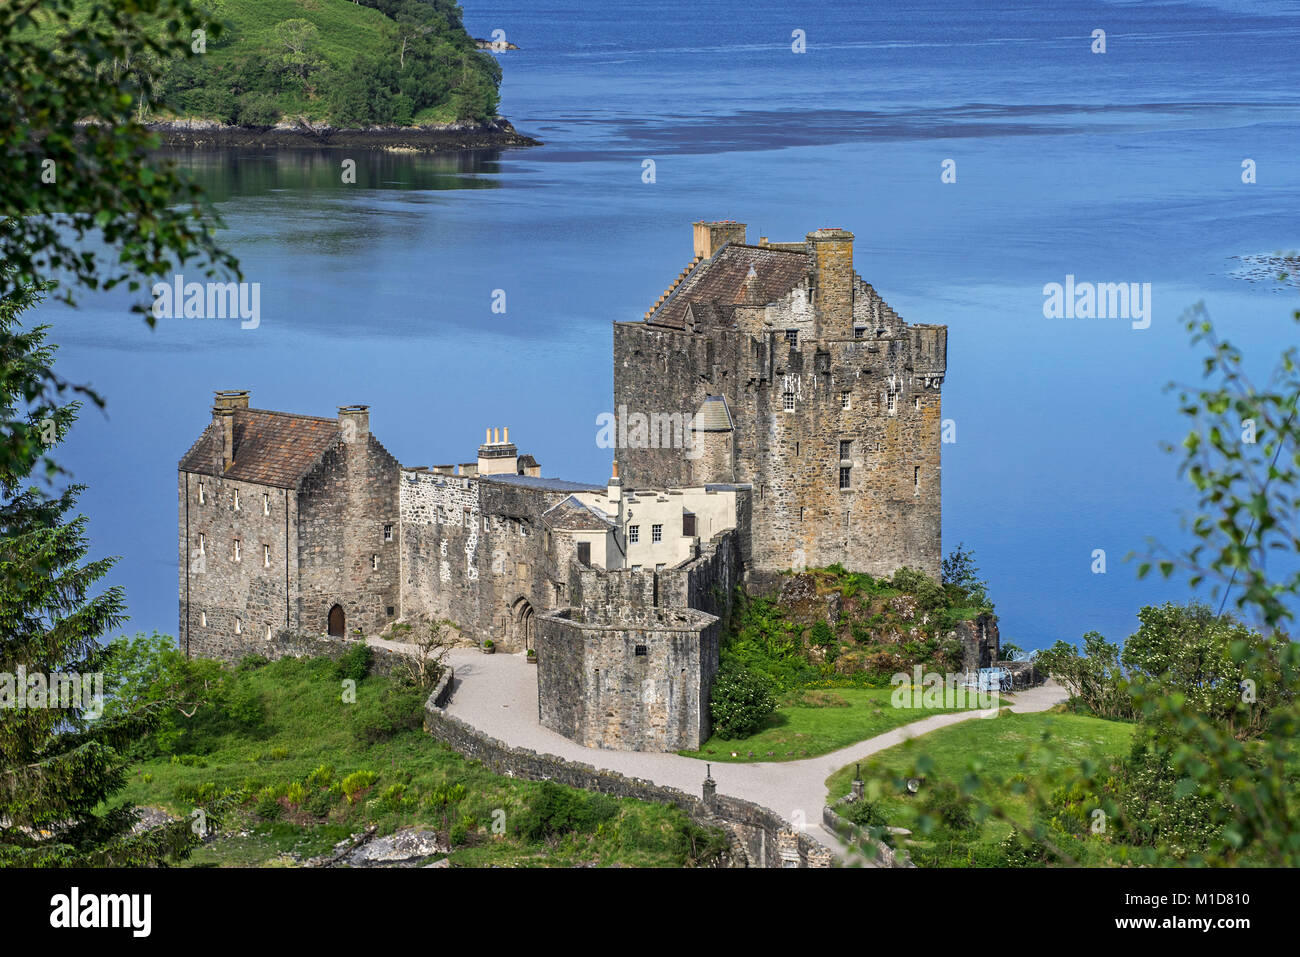 Eilean Donan Castle in Loch Duich, Ross and Cromarty, Scottish Highlands, Scotland, UK - Stock Image